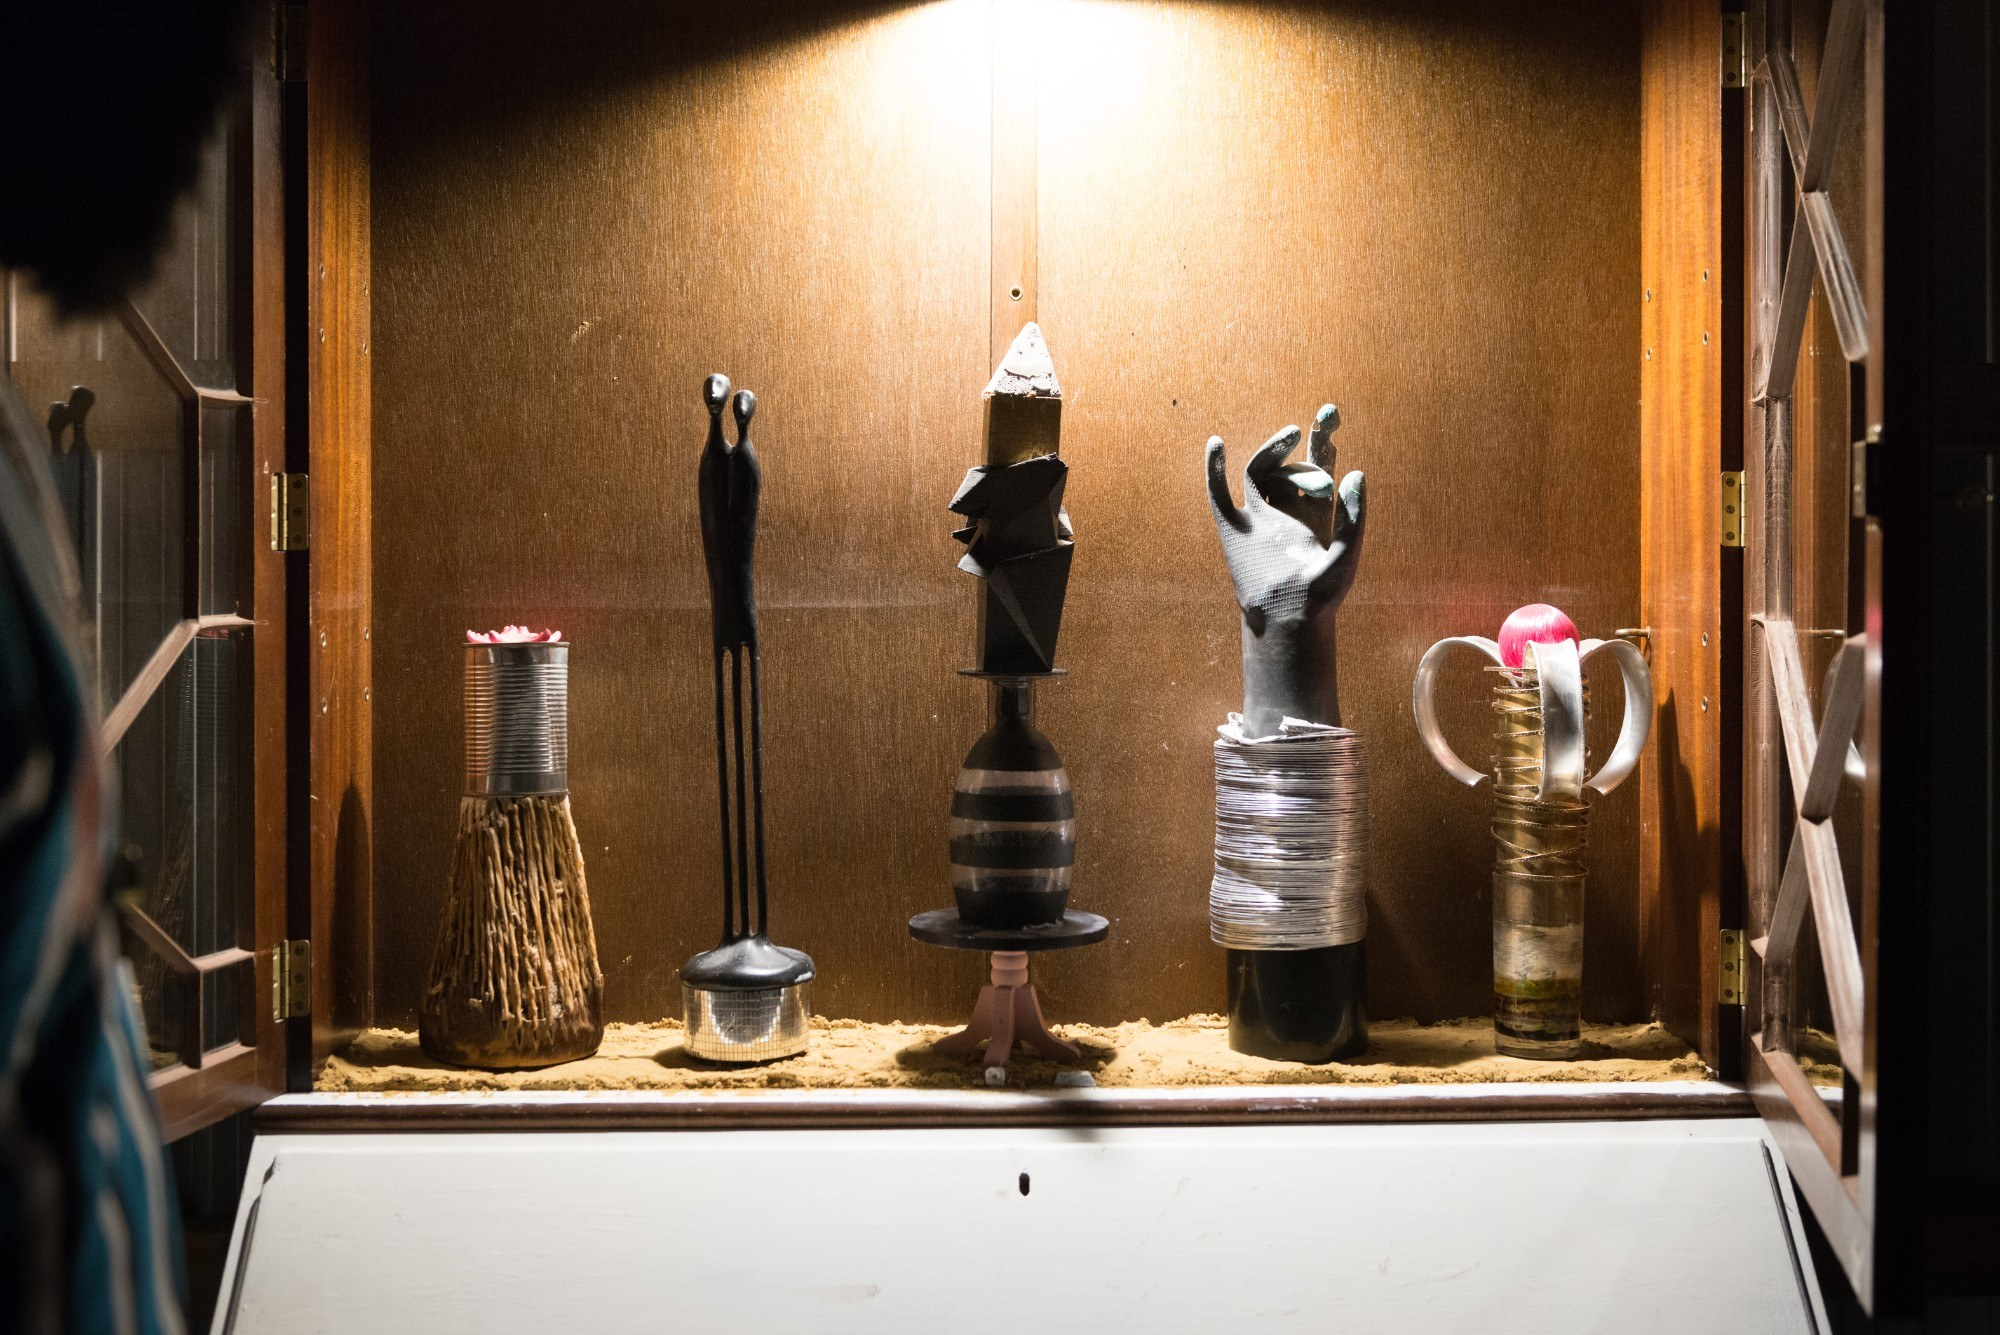 A trophy case with unusually shaped trophies inside, such as a hand and a tin can